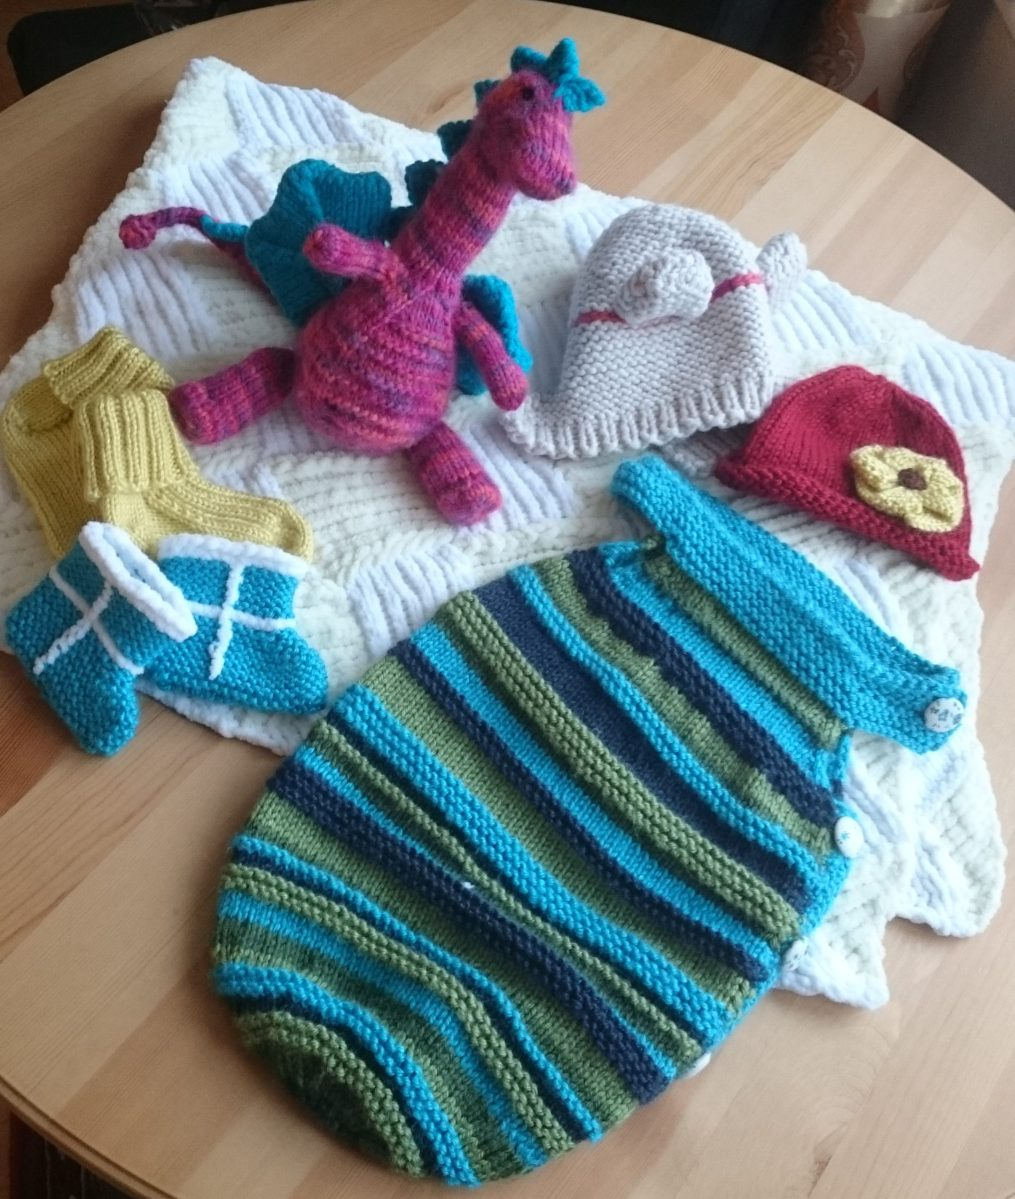 Some prepare for their little one by creating extravagant nurseries. I knit.